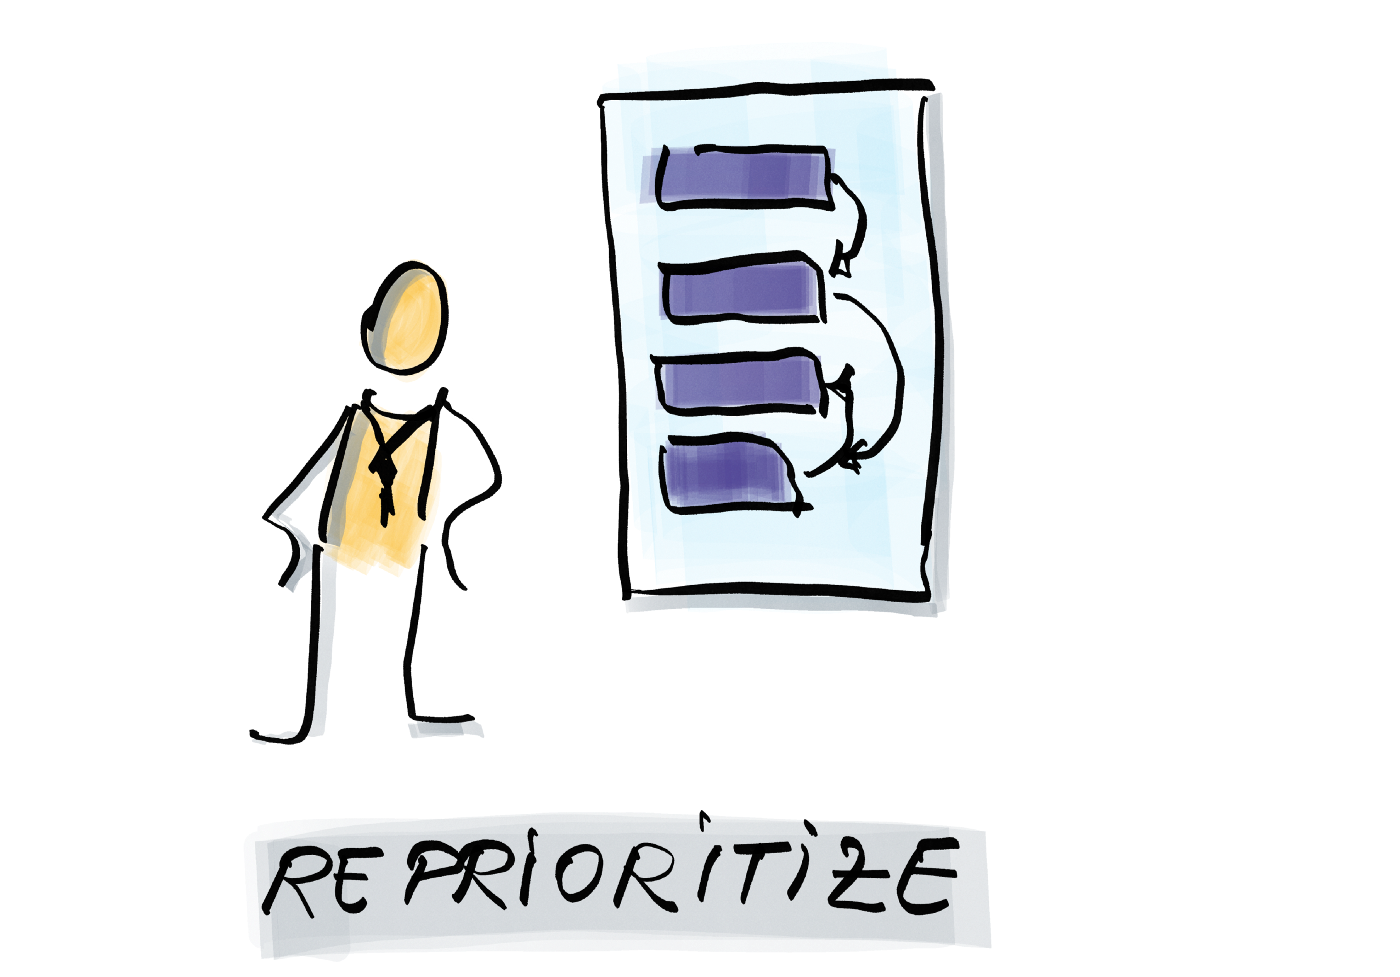 The PO sets priorities in the product backlog